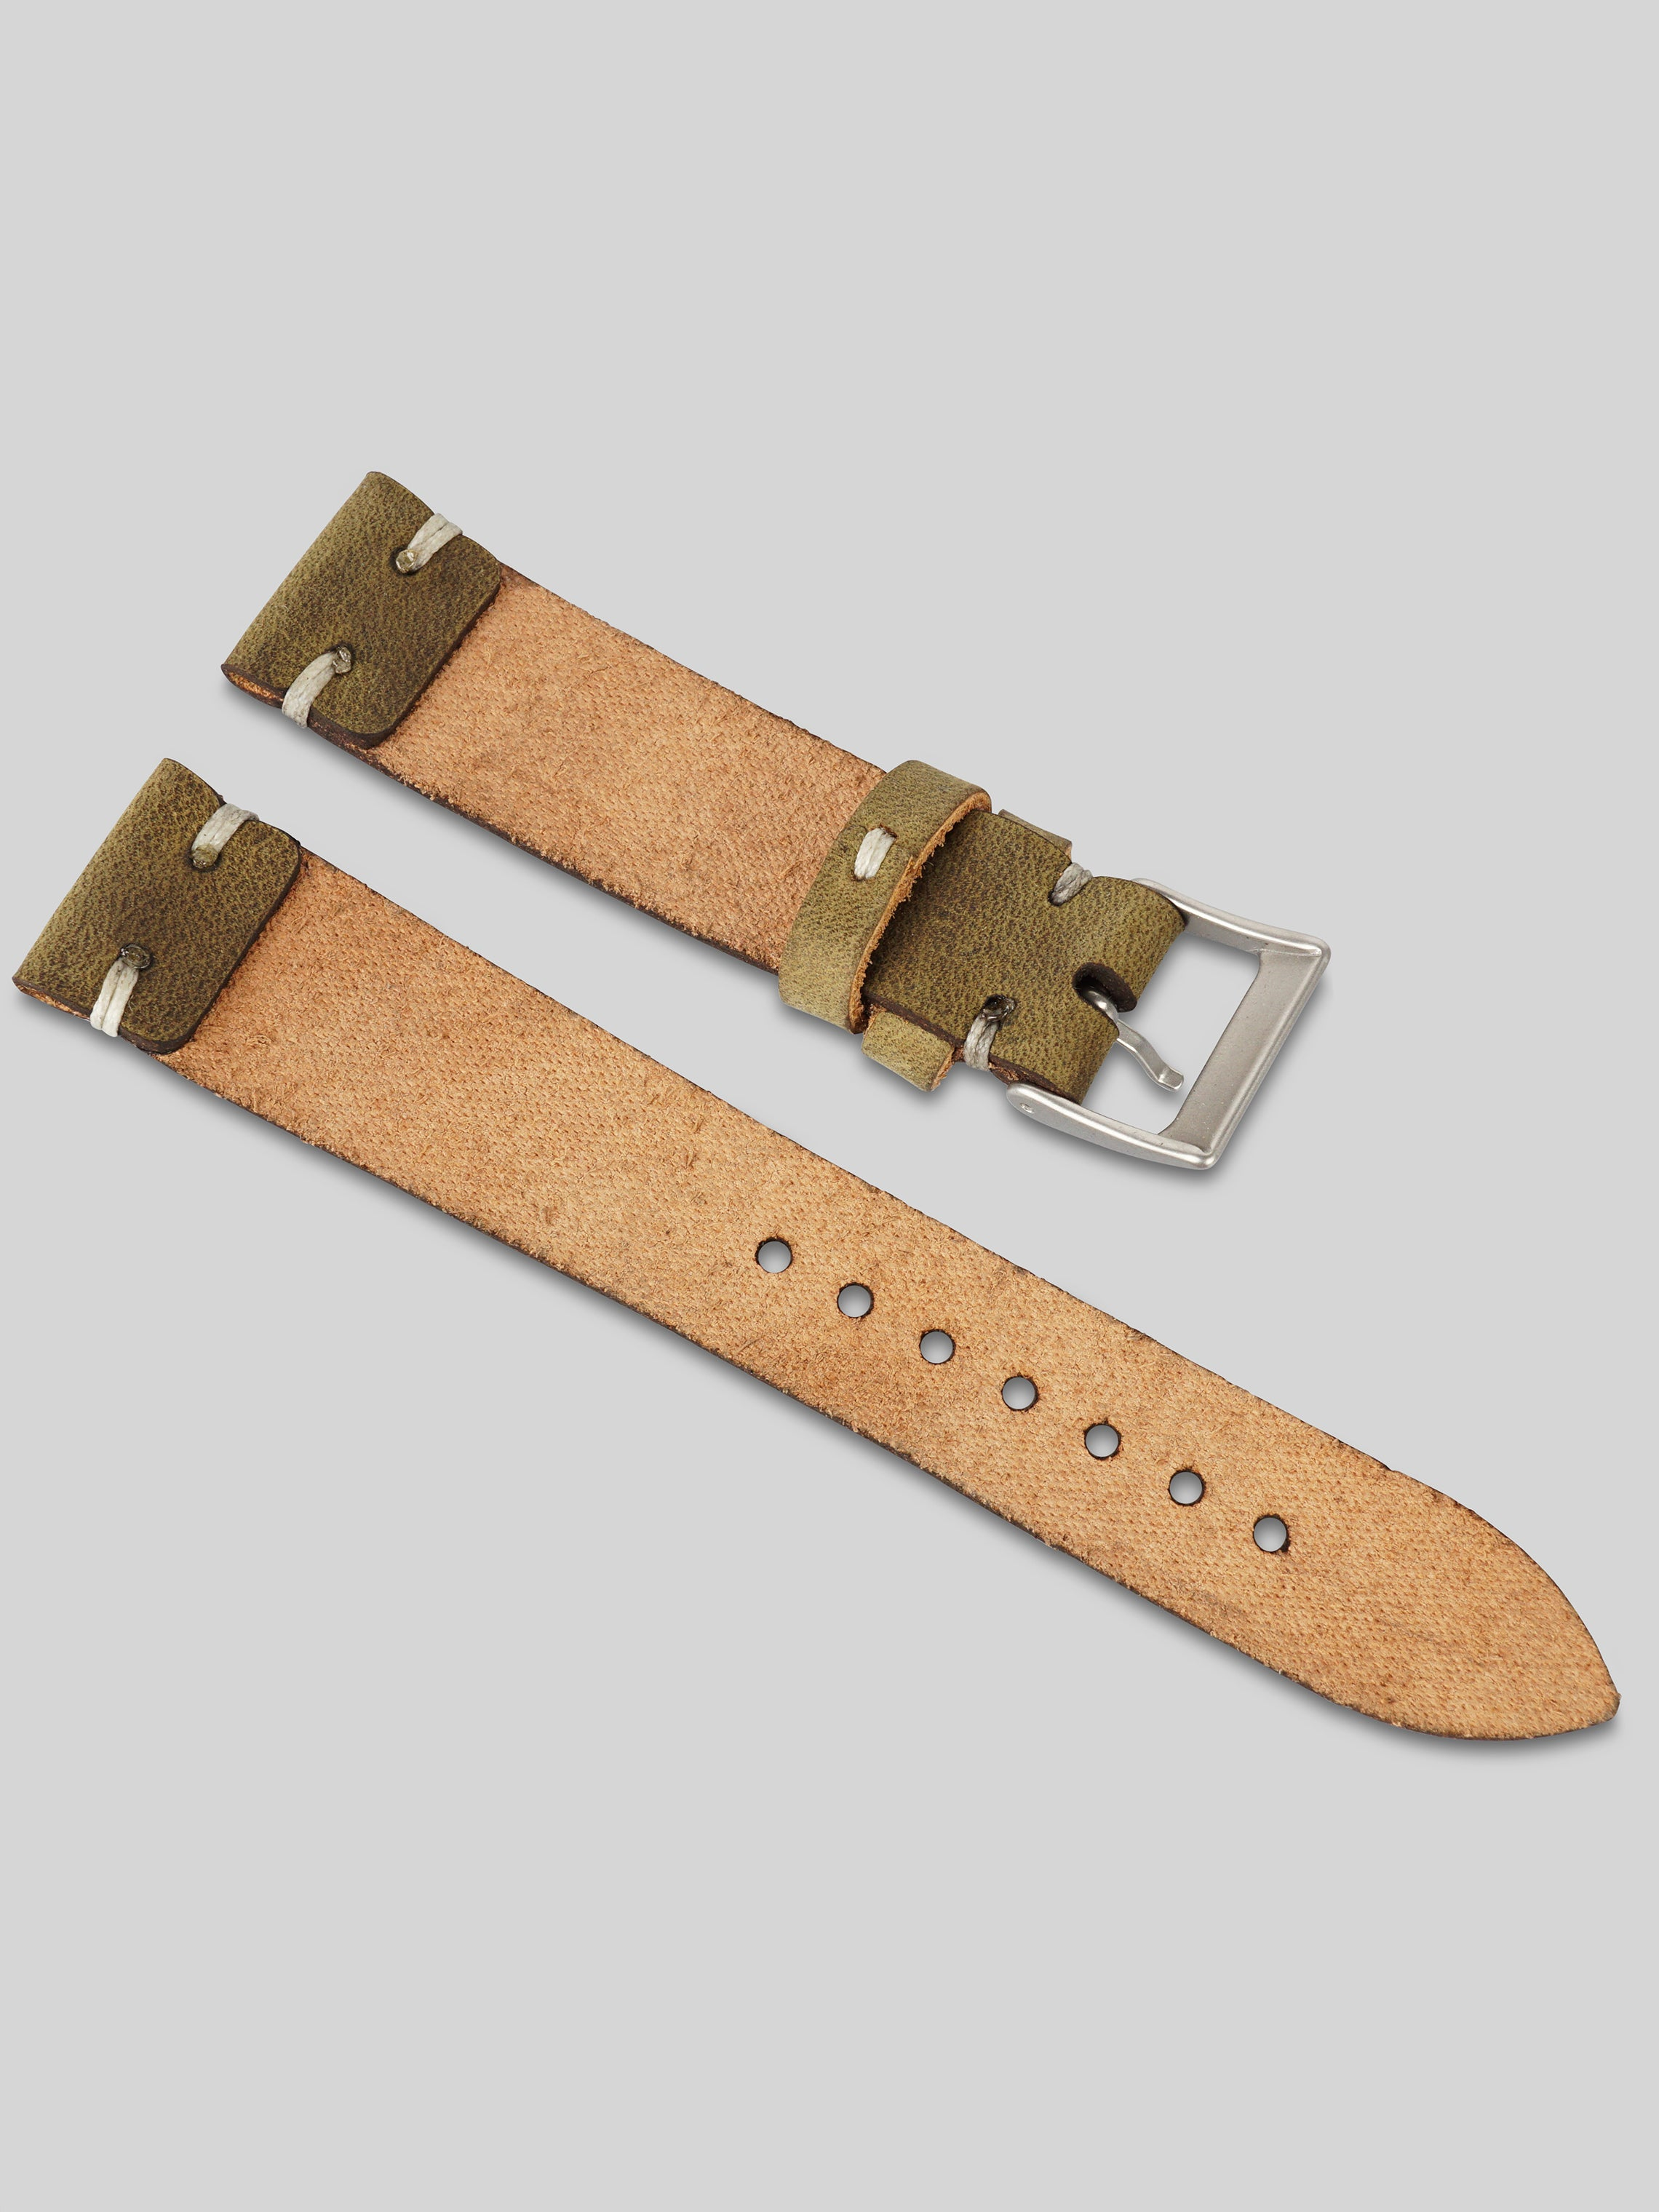 Oiled Leather Watch Strap - Olive